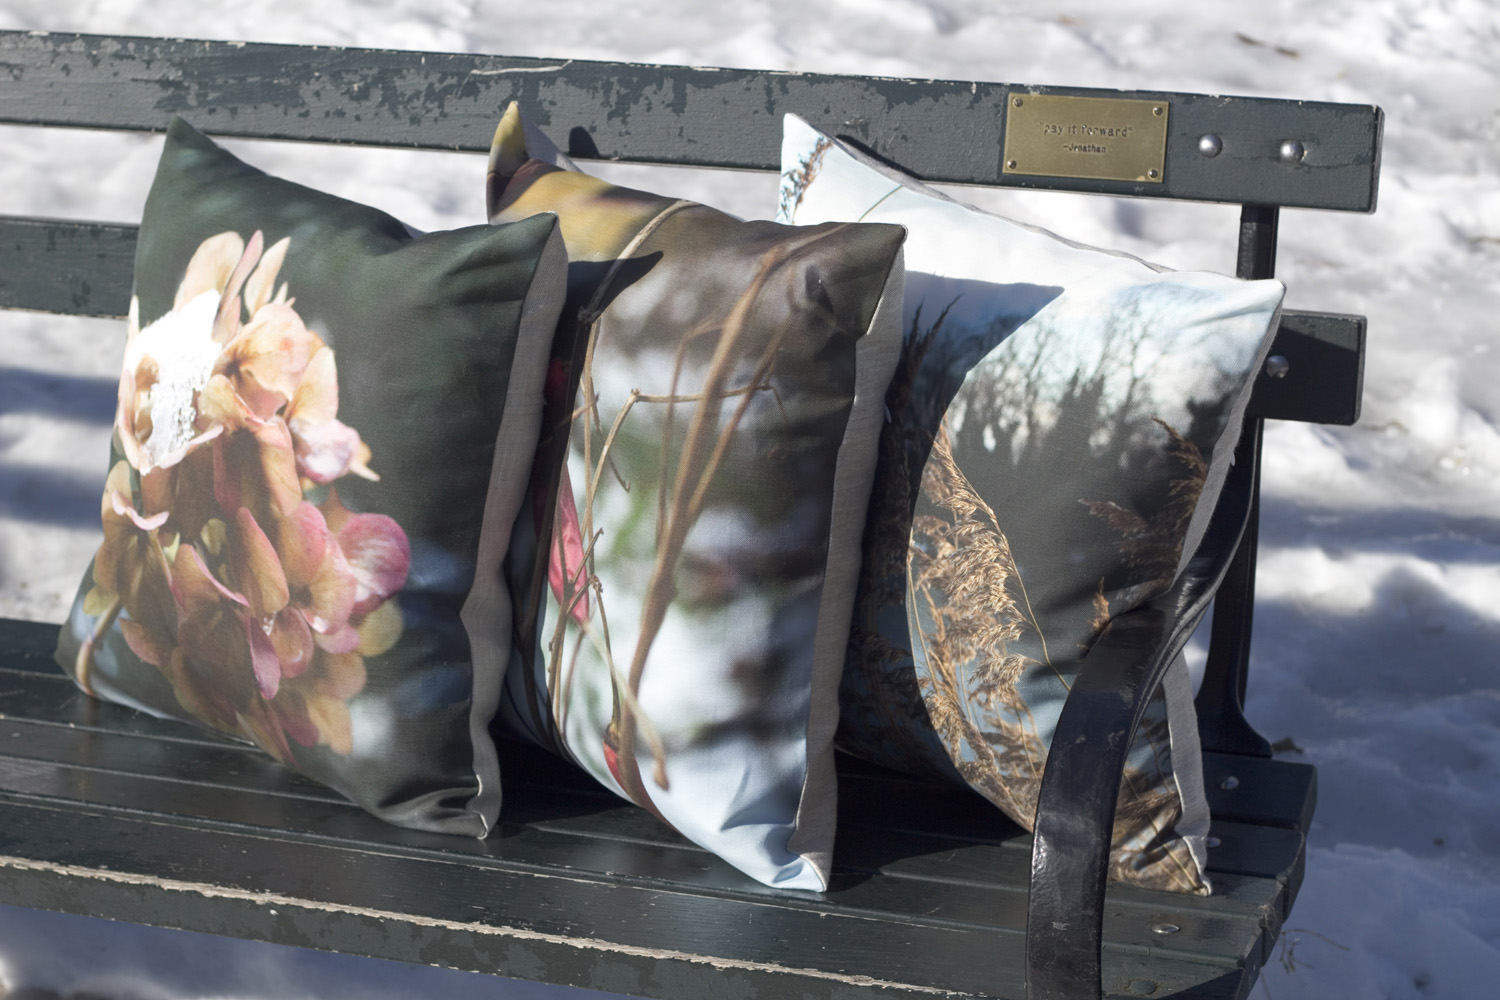 I don't usually schlepp pillows into the park when it's snowing, but on special occasions... Left to right:  Hydrangea ,  Chilis in the Snow , and  Christiania  linen pillows.